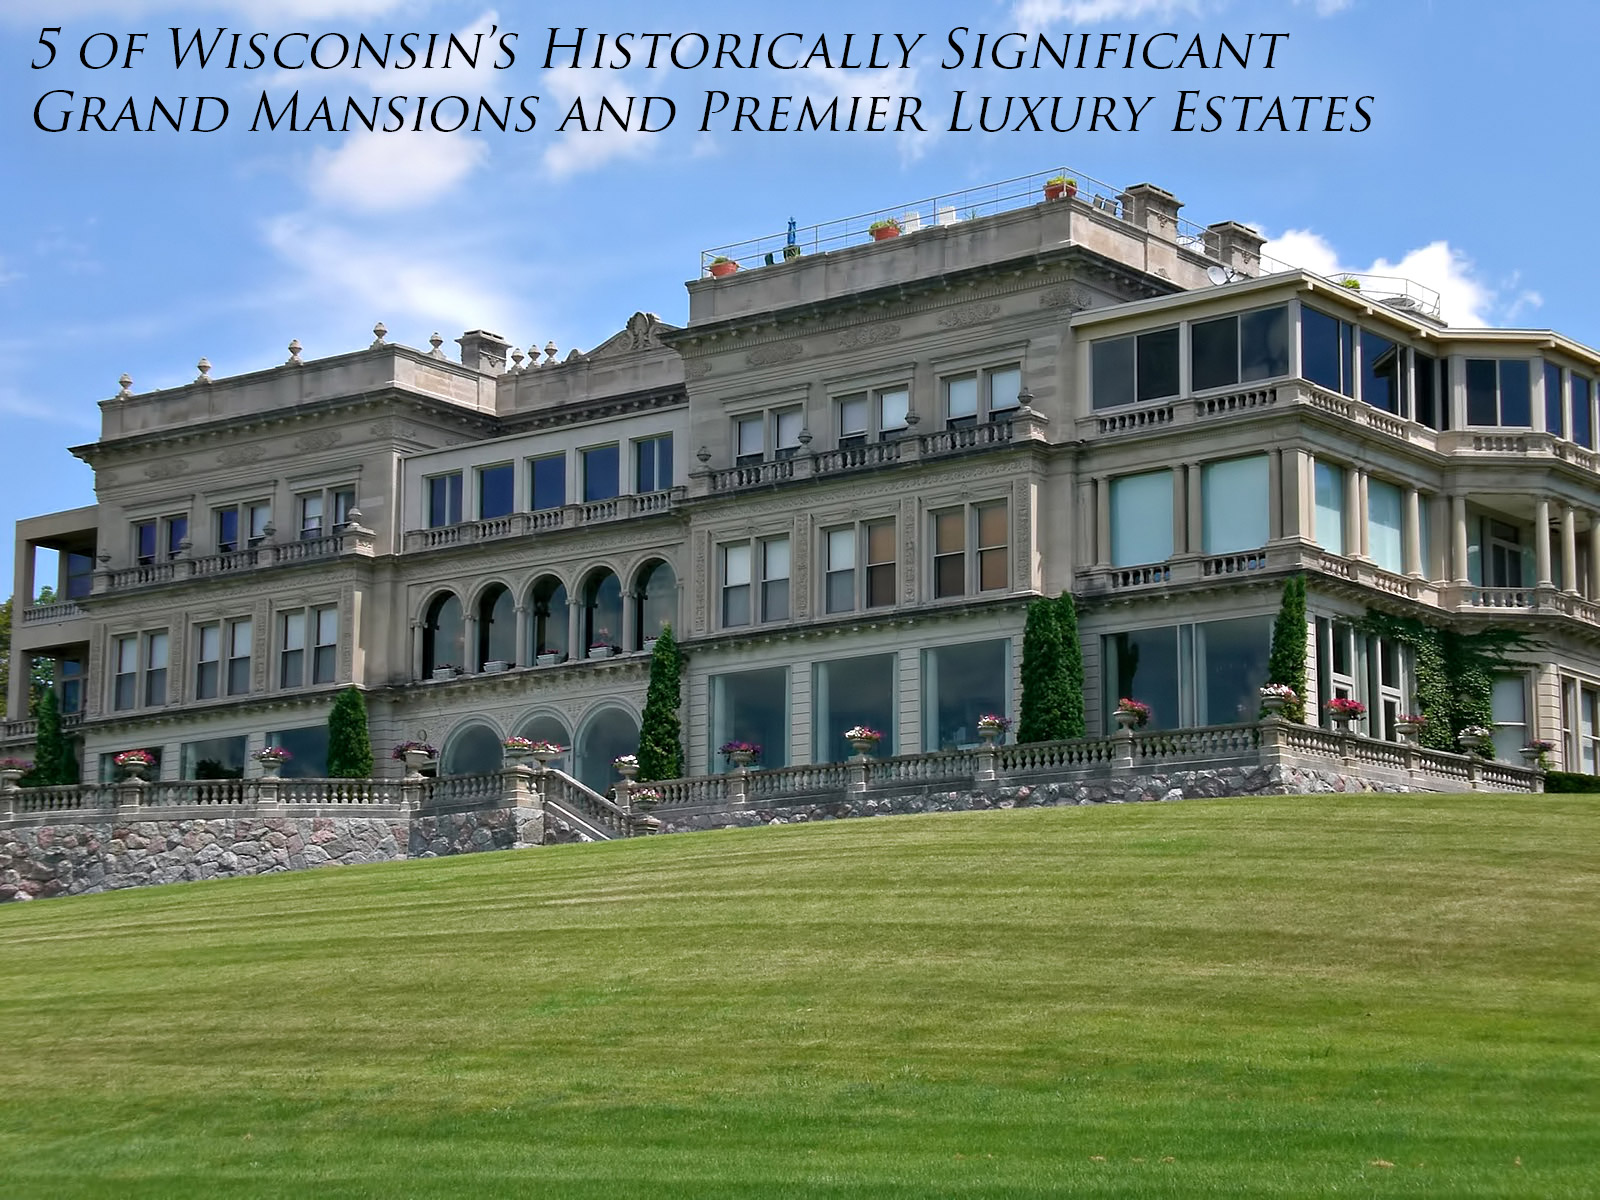 5 of Wisconsin's Historically Significant Grand Mansions and Premier Luxury Estates